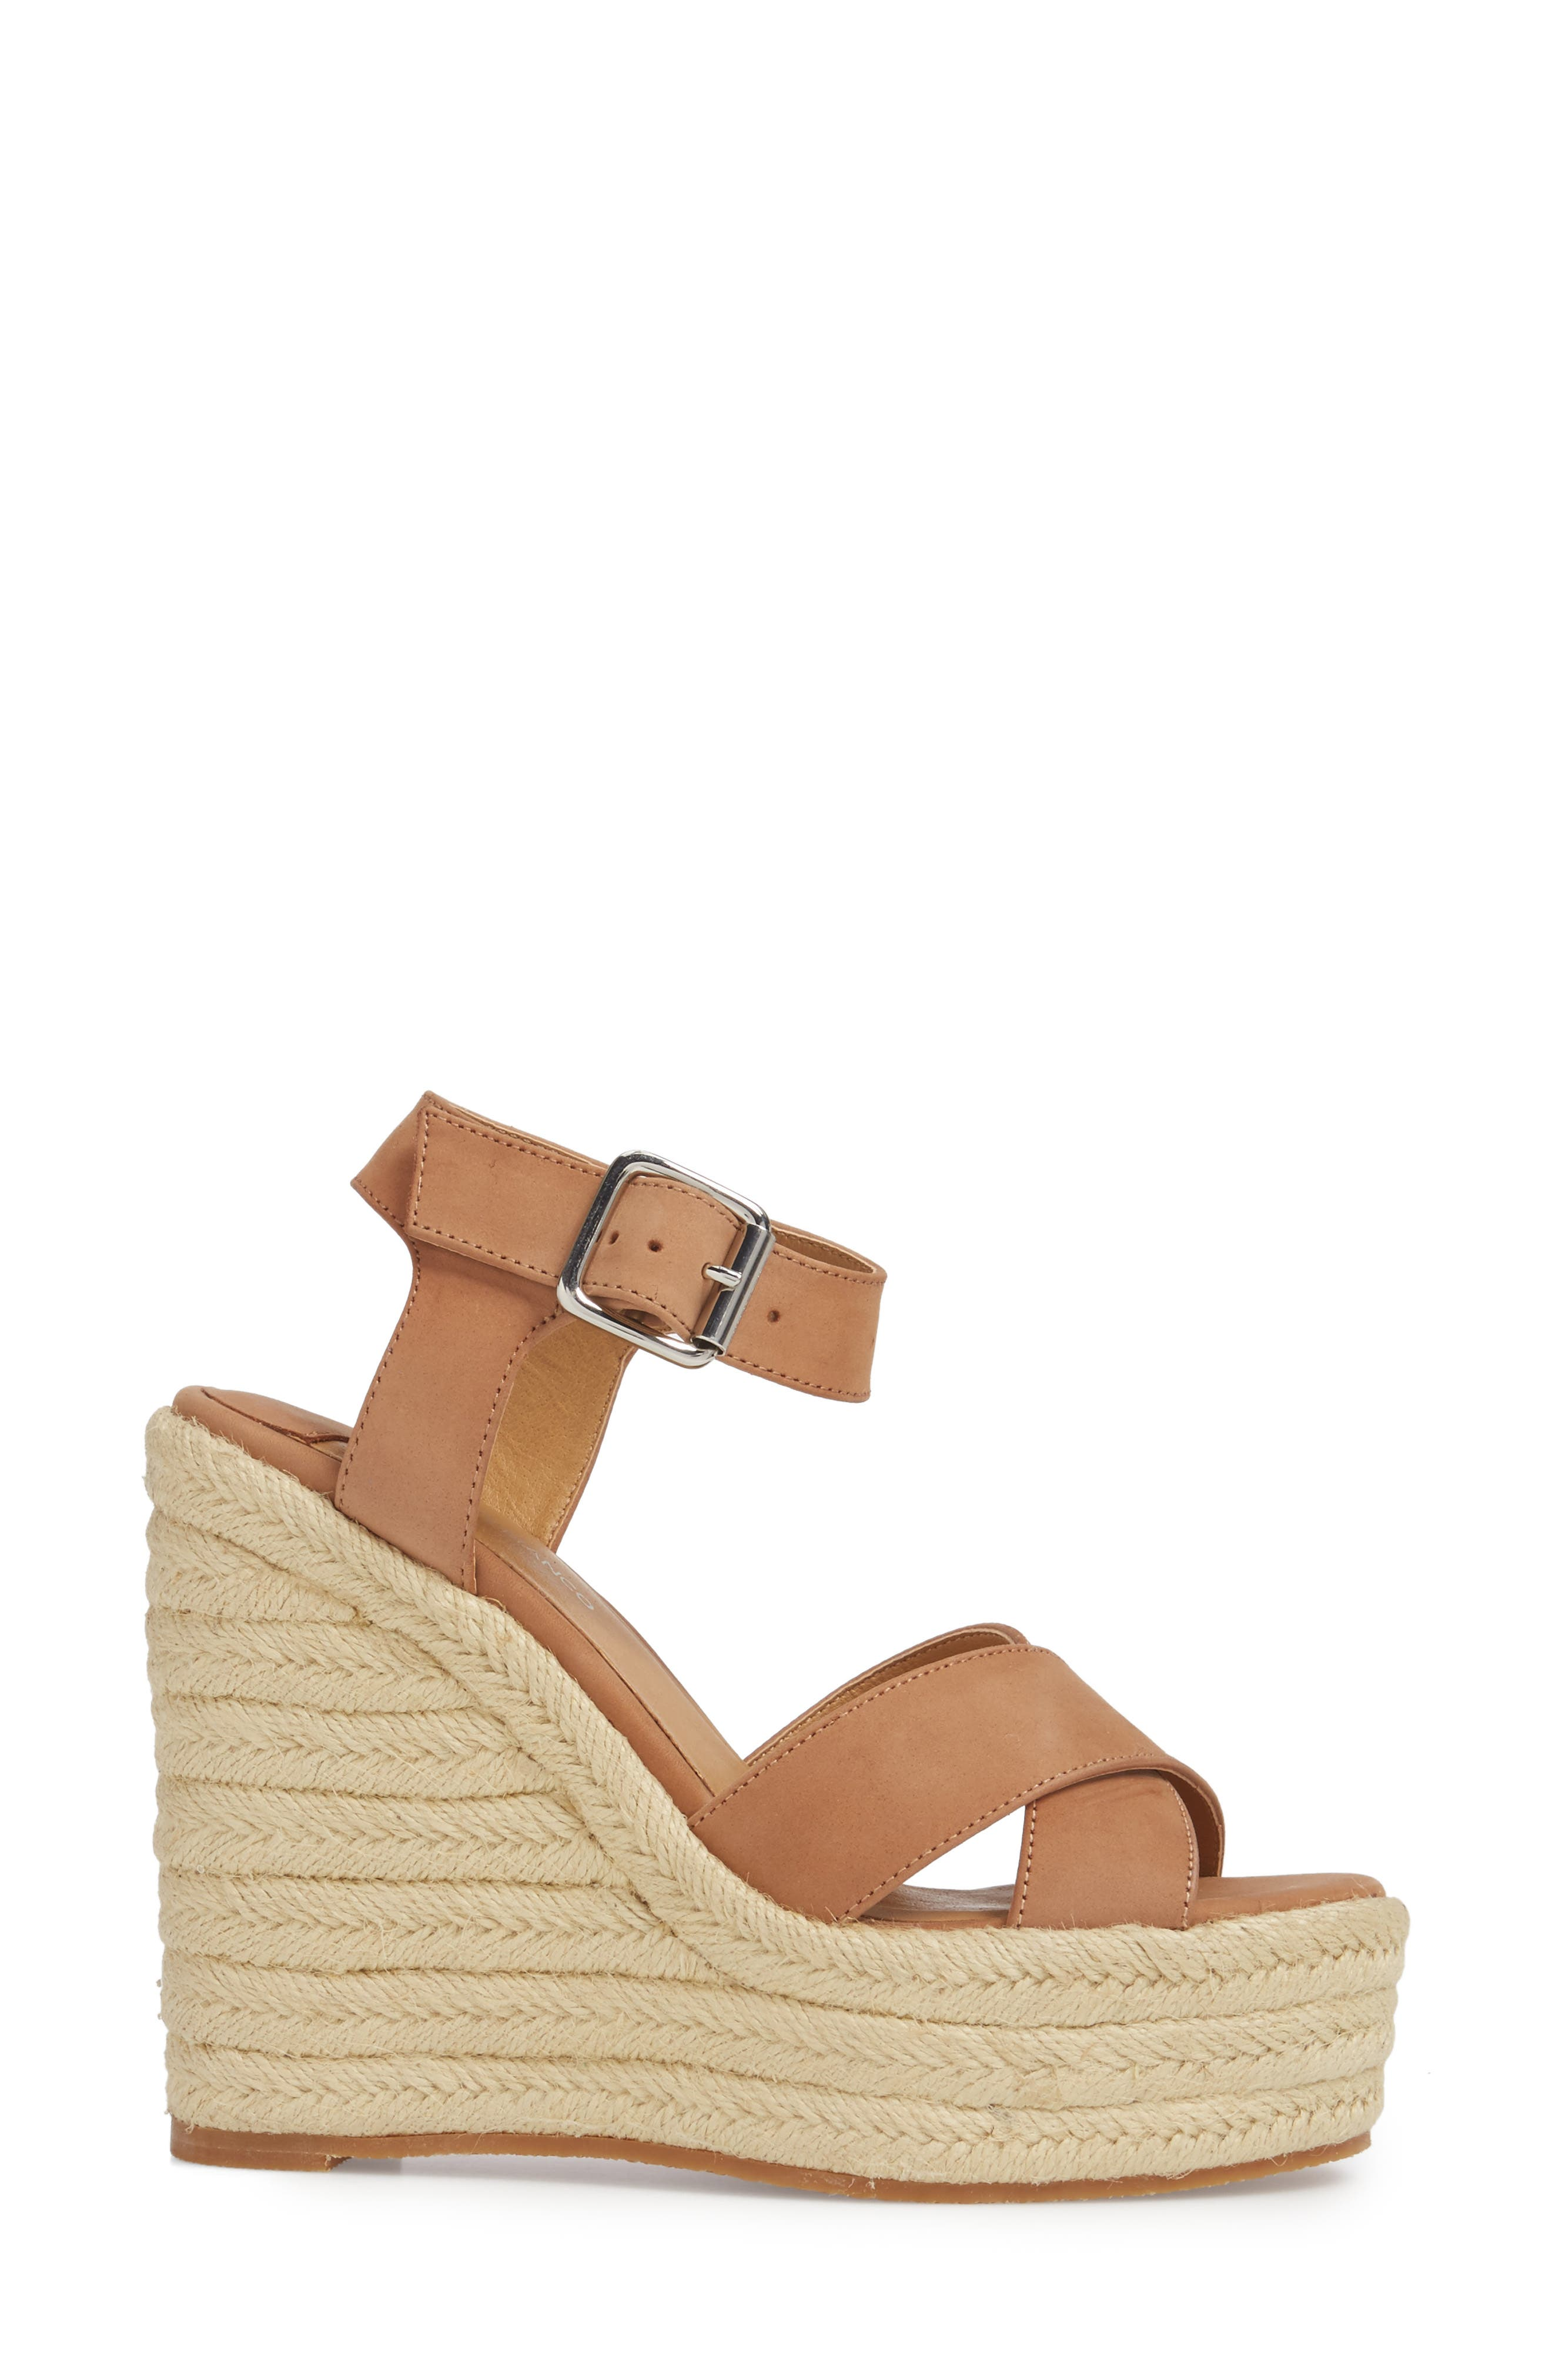 Boston Espadrille Wedge Sandal,                             Alternate thumbnail 3, color,                             CARAMEL PHOENIX LEATHER